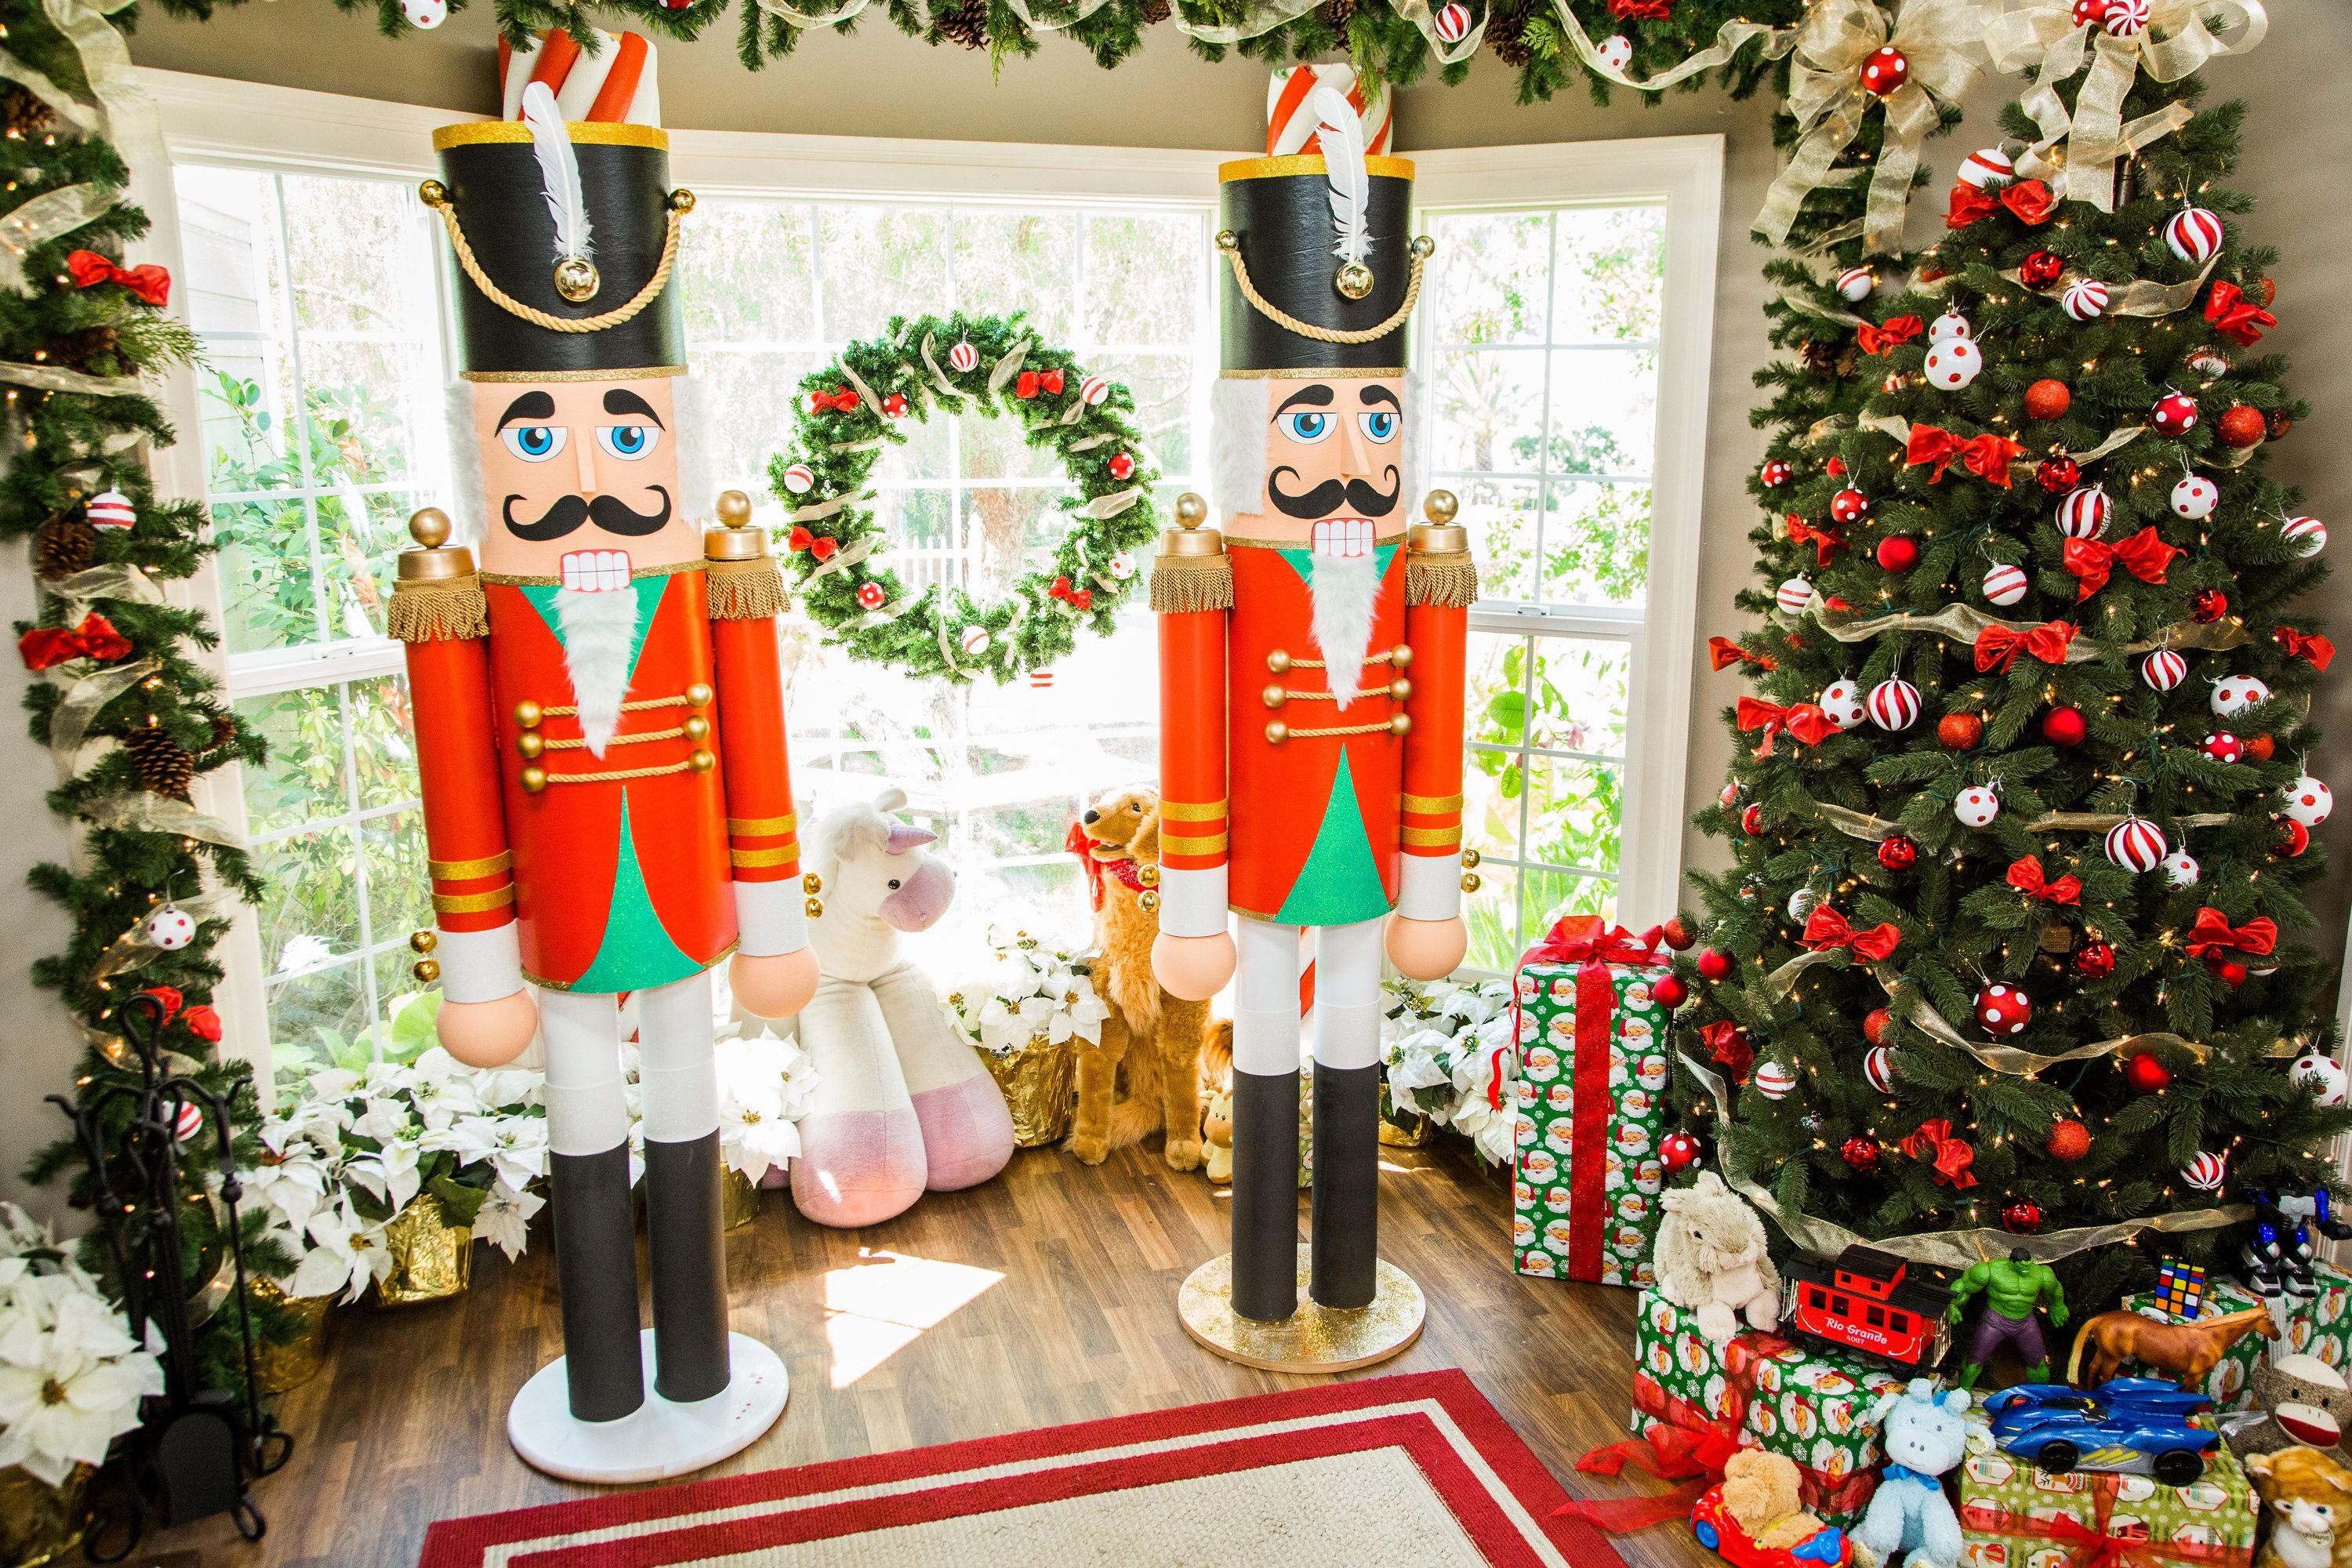 Diy Life Size Nutcracker Nutcrackers Diy Christmas Ornaments Home And Family Crafts